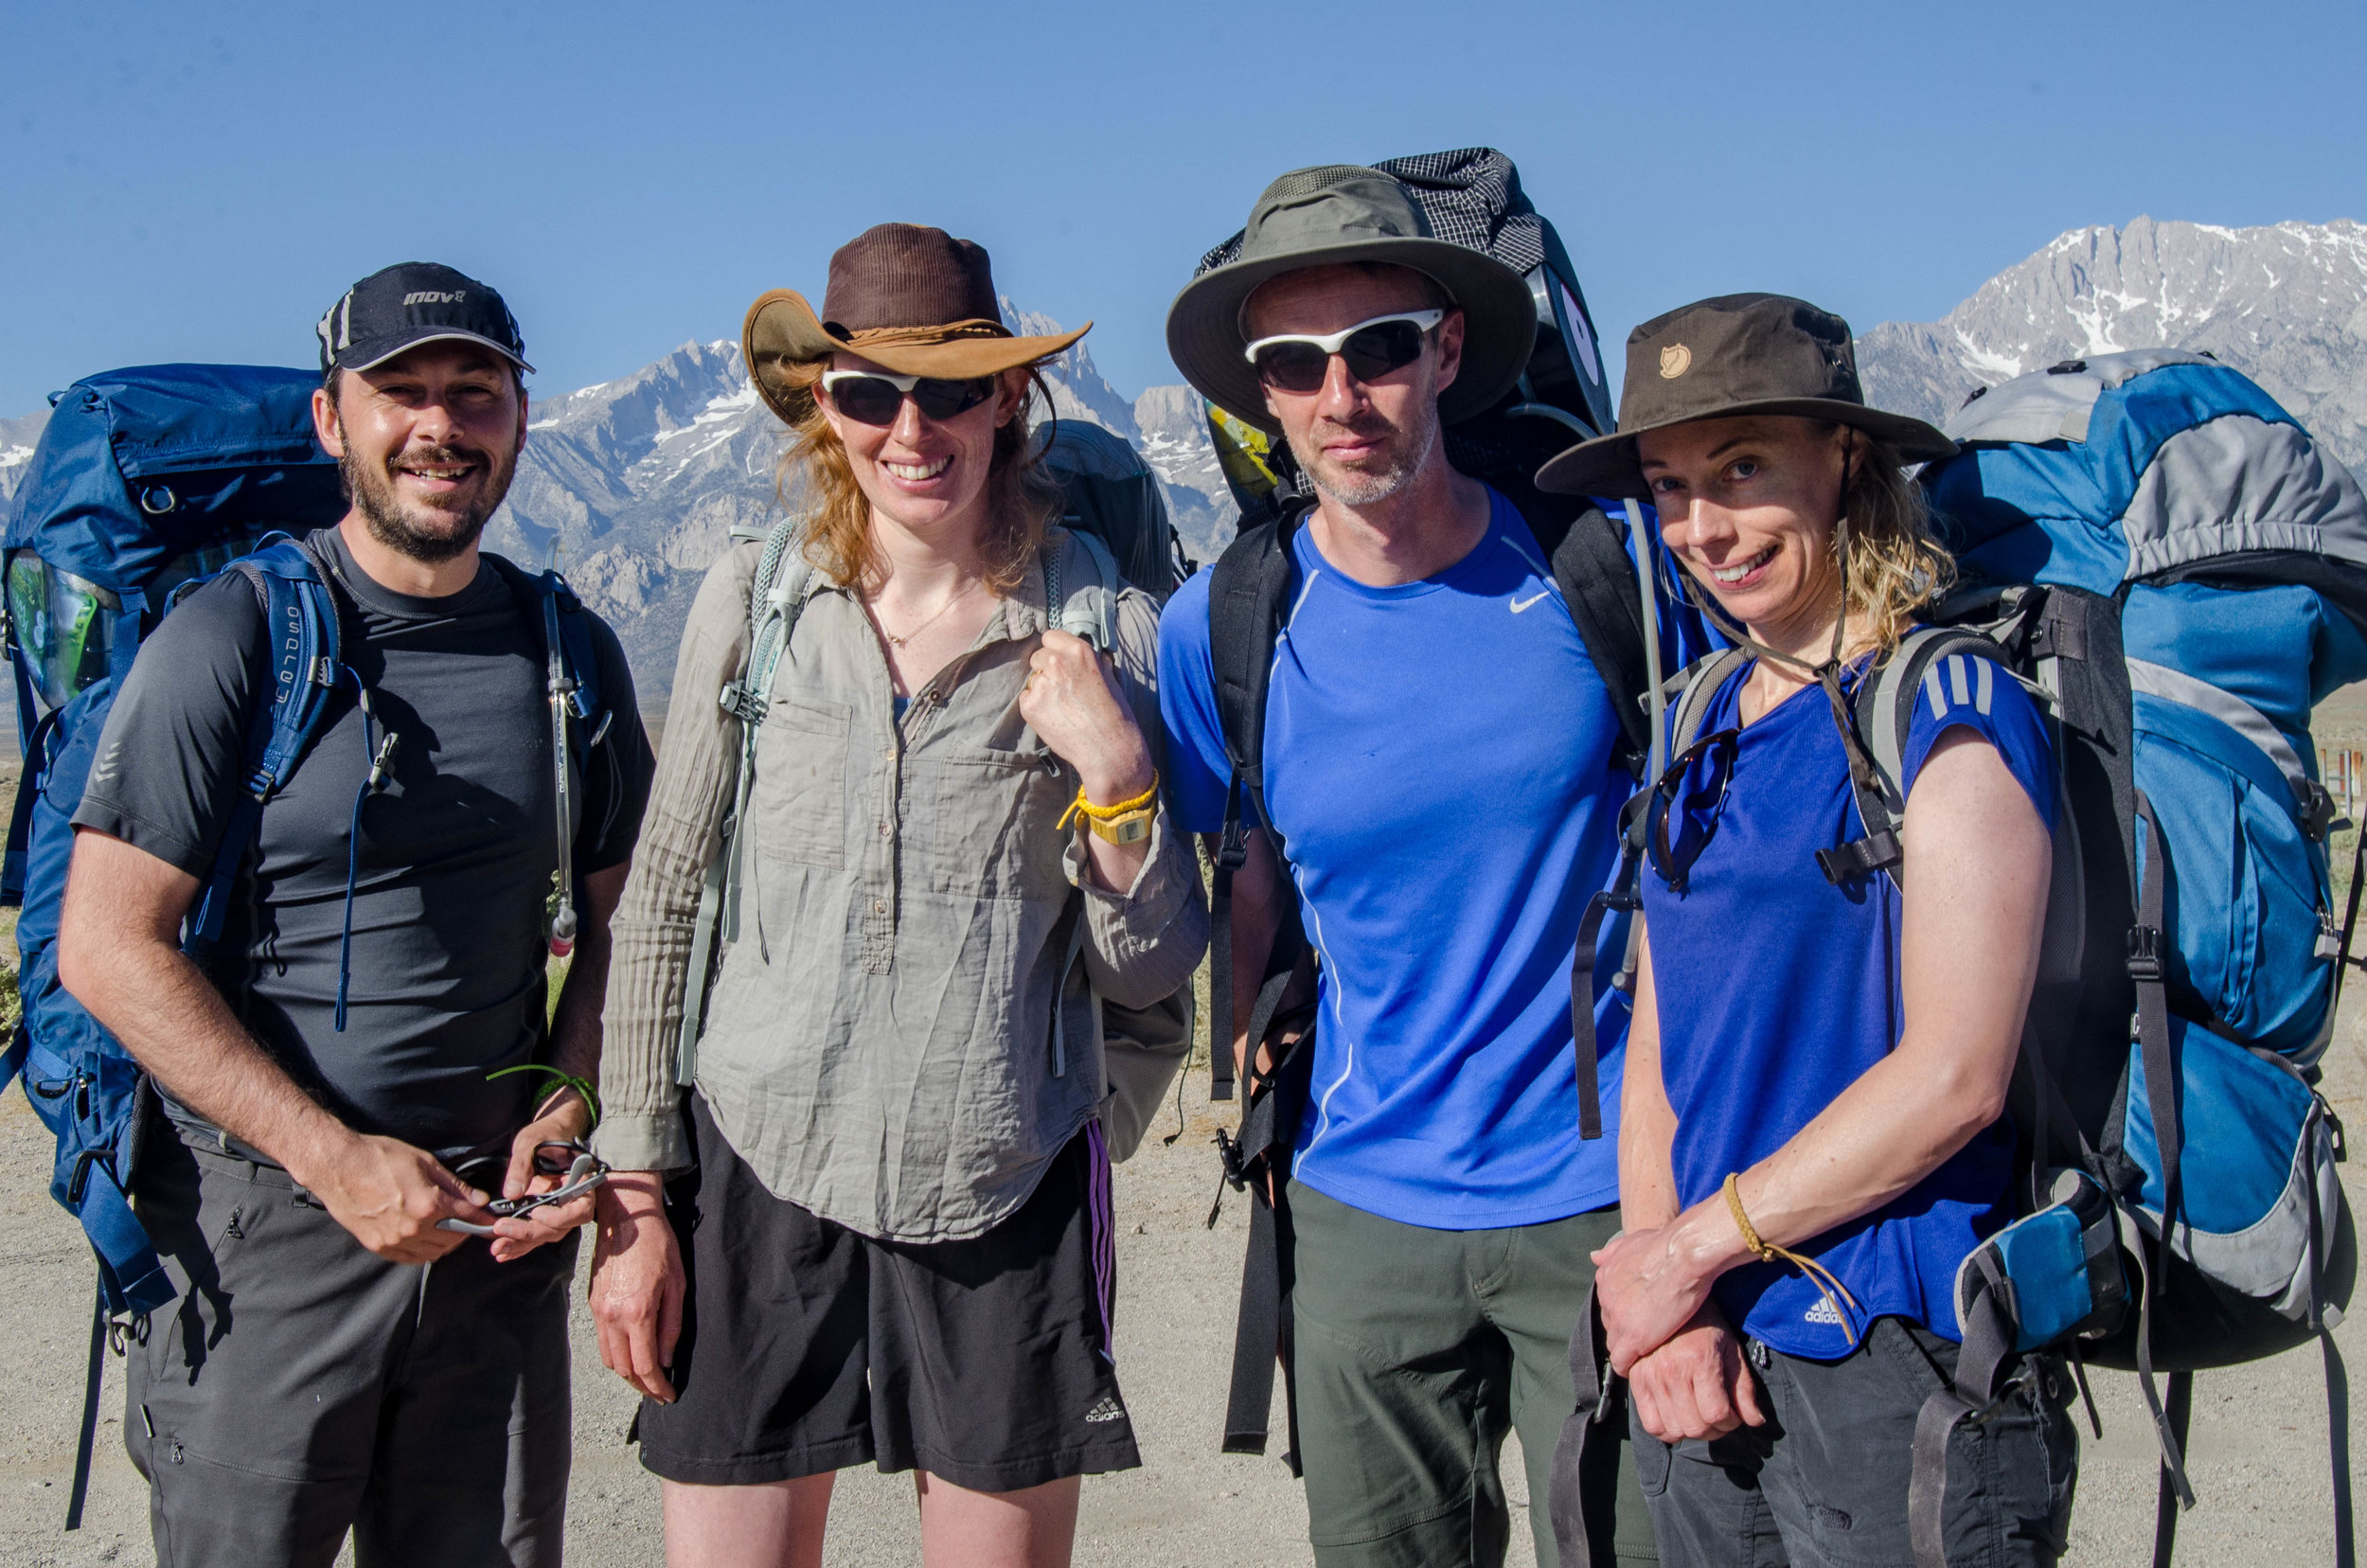 North Bound JMT Hikers from the UK Shelly, David, Juliet and Stuart